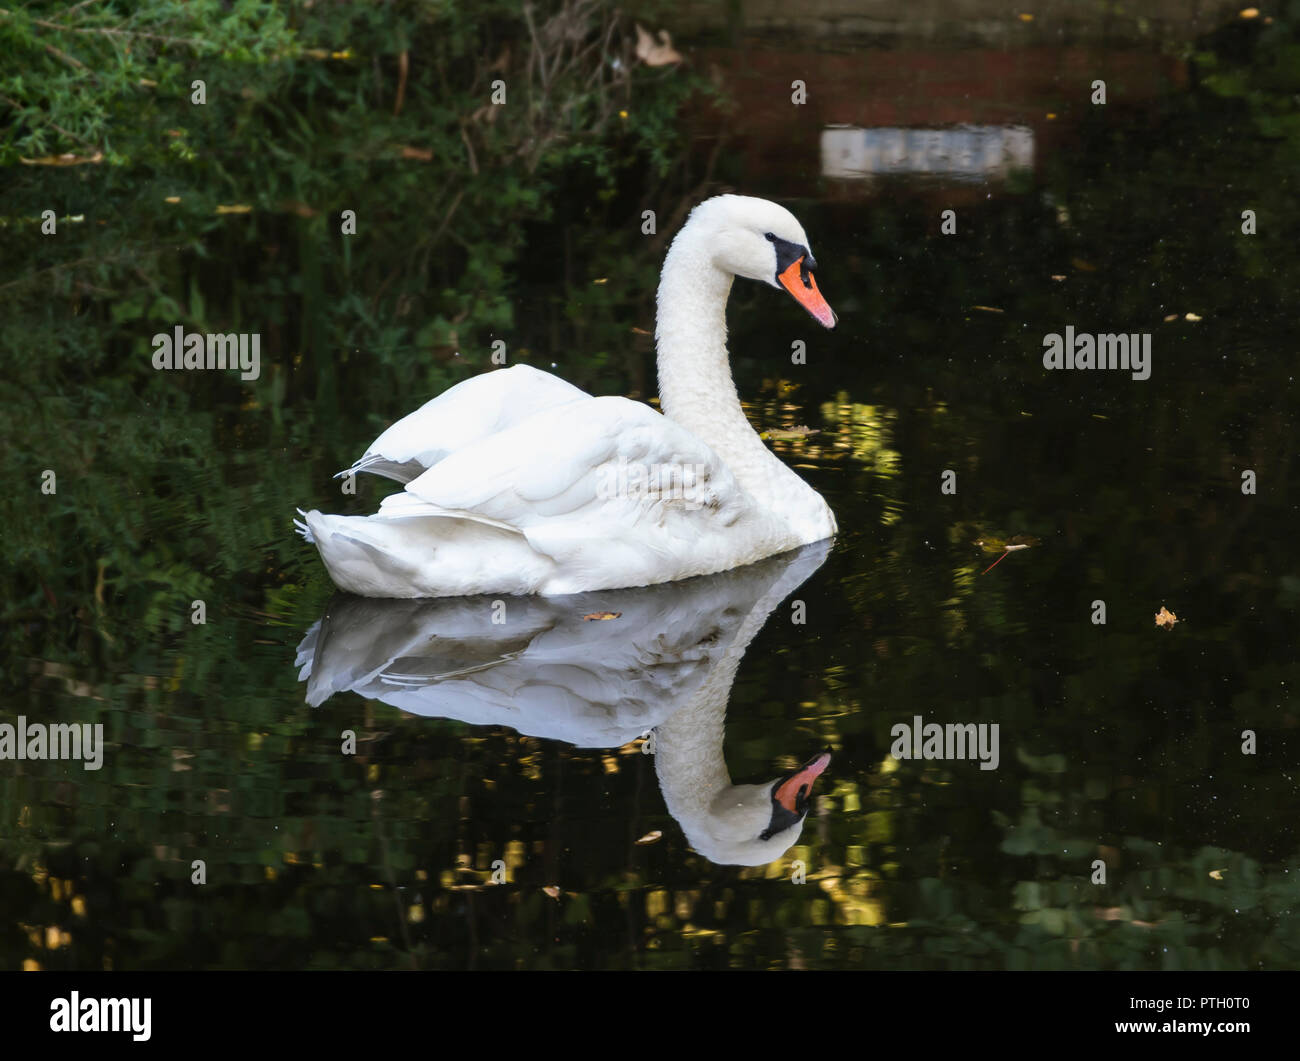 Adult White Mute Swan (Cygnus olor), side view, swimming in water with perfect reflection in Autumn in West Sussex, England, UK. - Stock Image